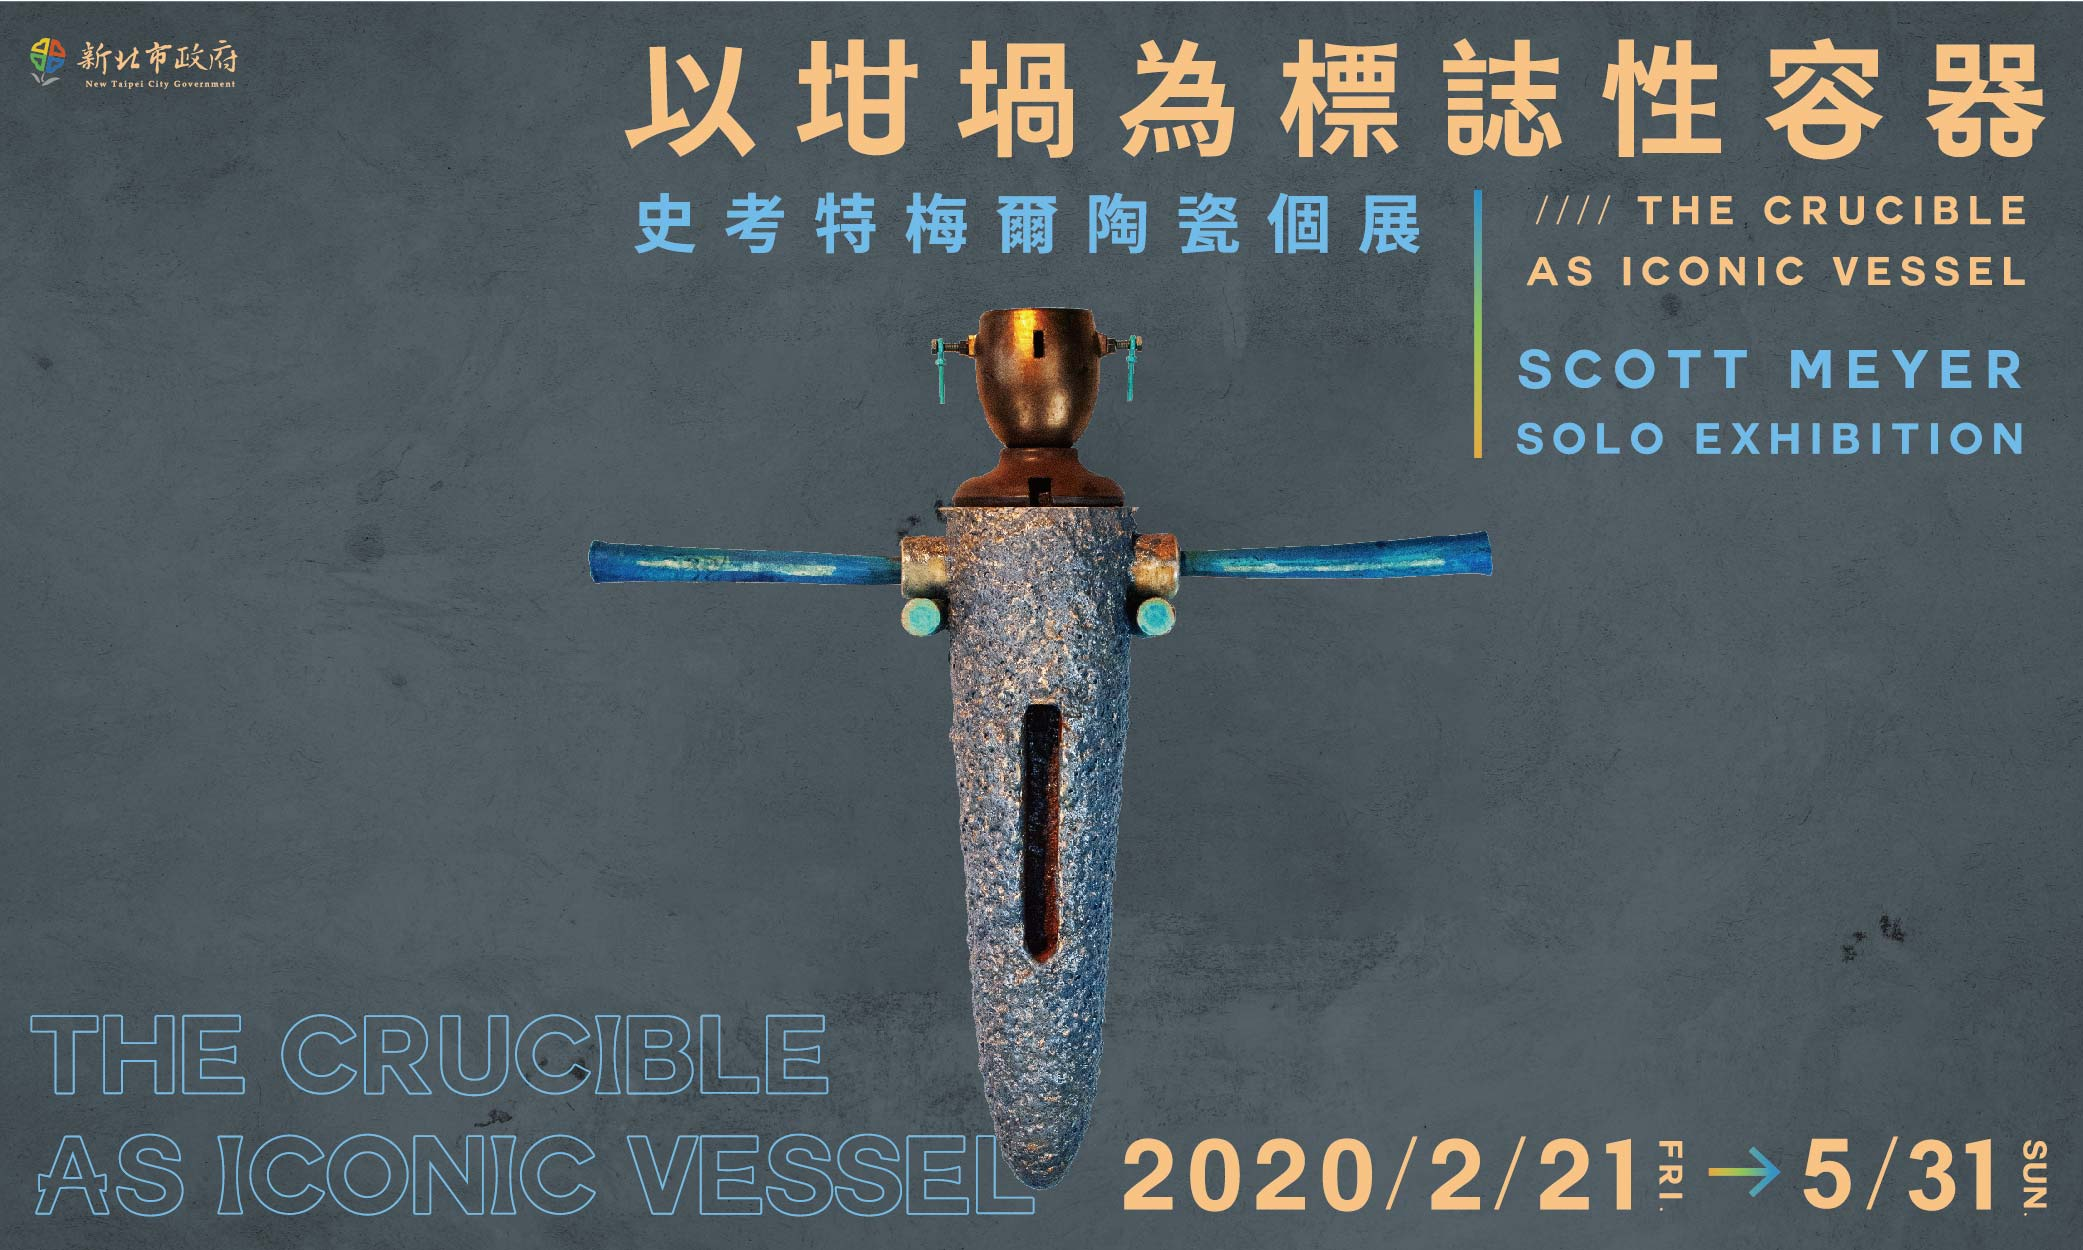 The Crucible As Iconic Vessel- Scott Meyer Solo Exhibition